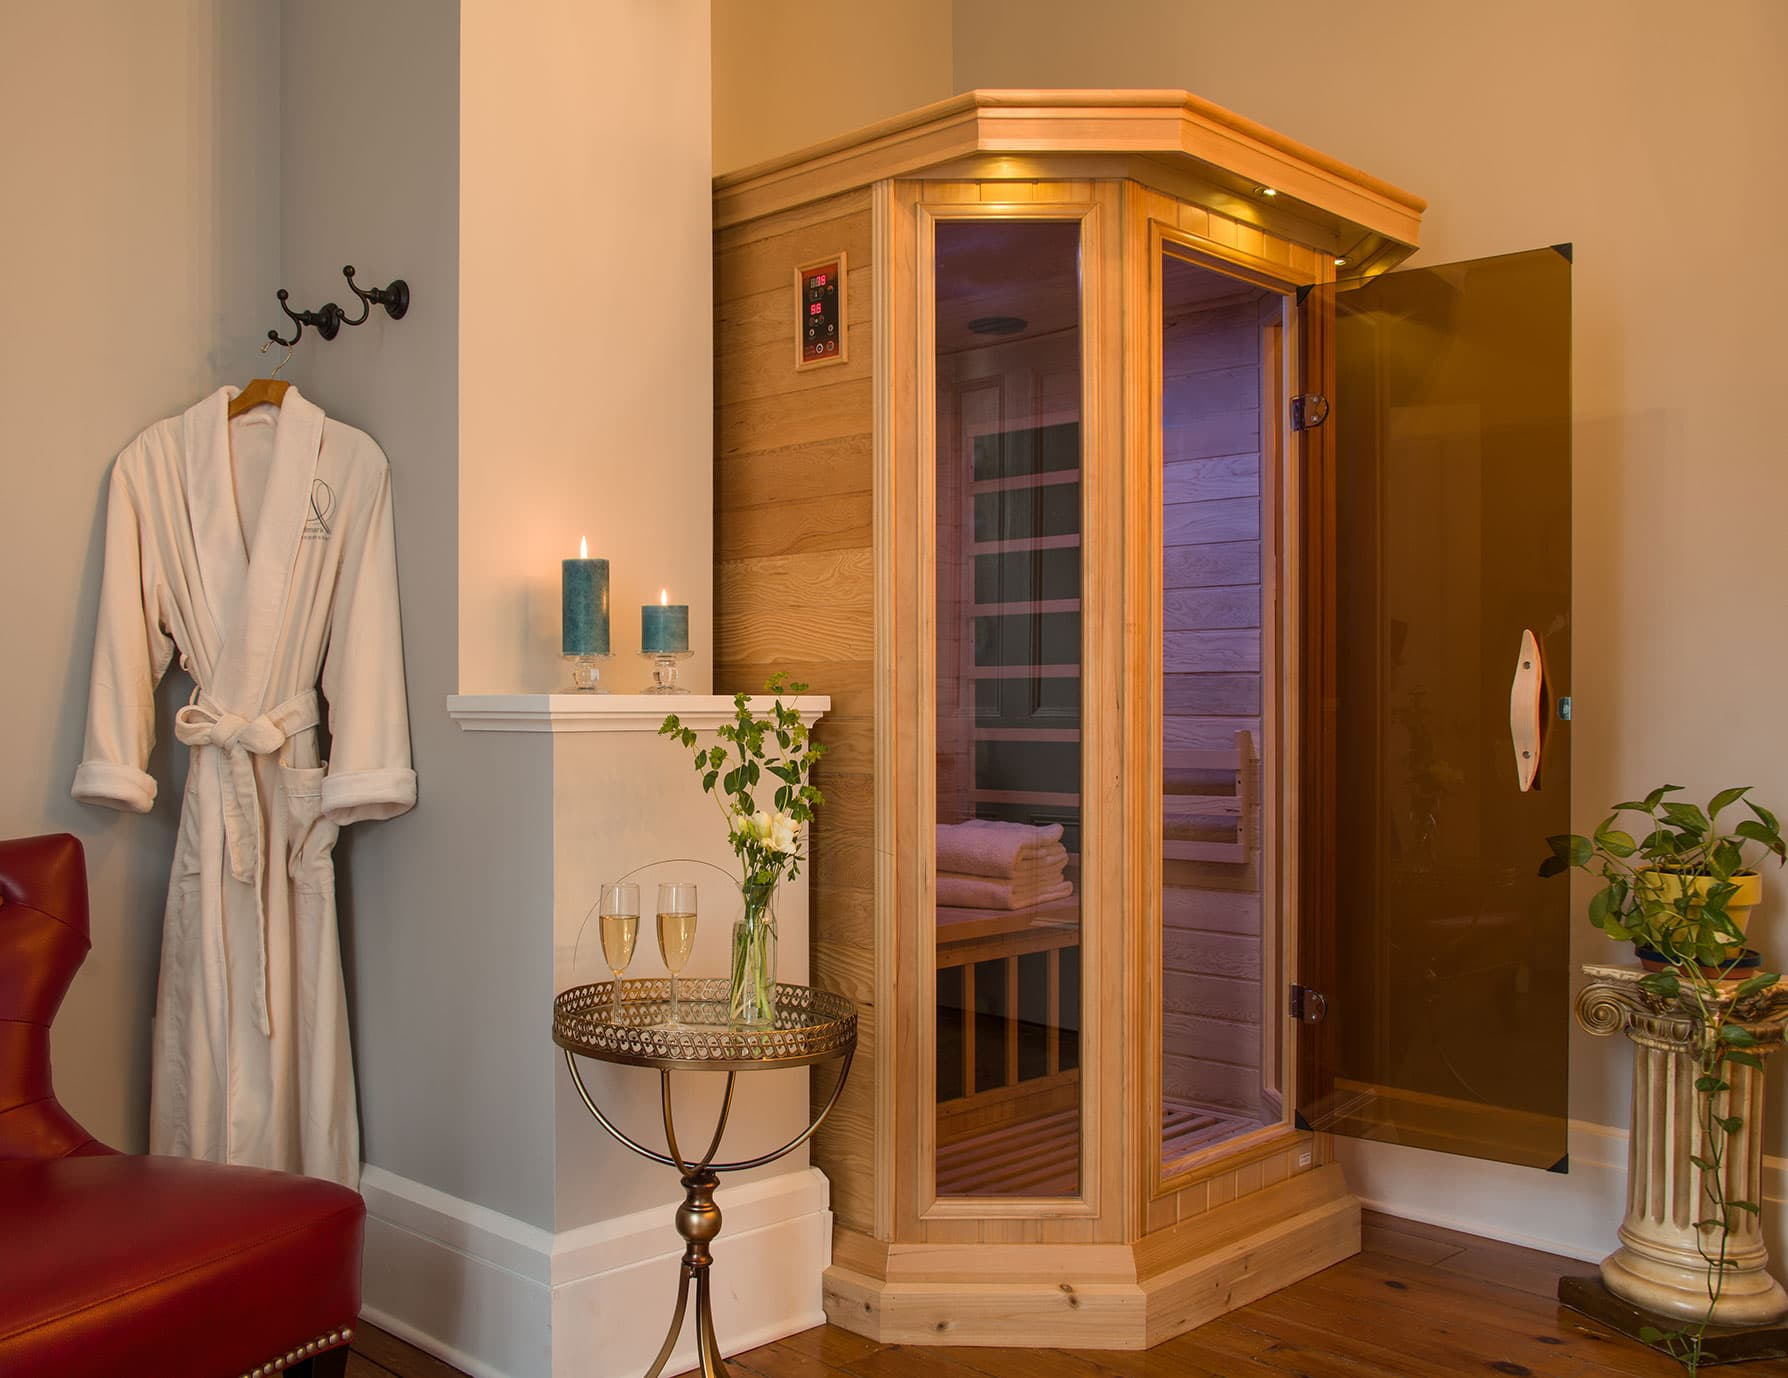 Sauna Room in the Summer's Suite - Top Place to Stay in Cooperstown